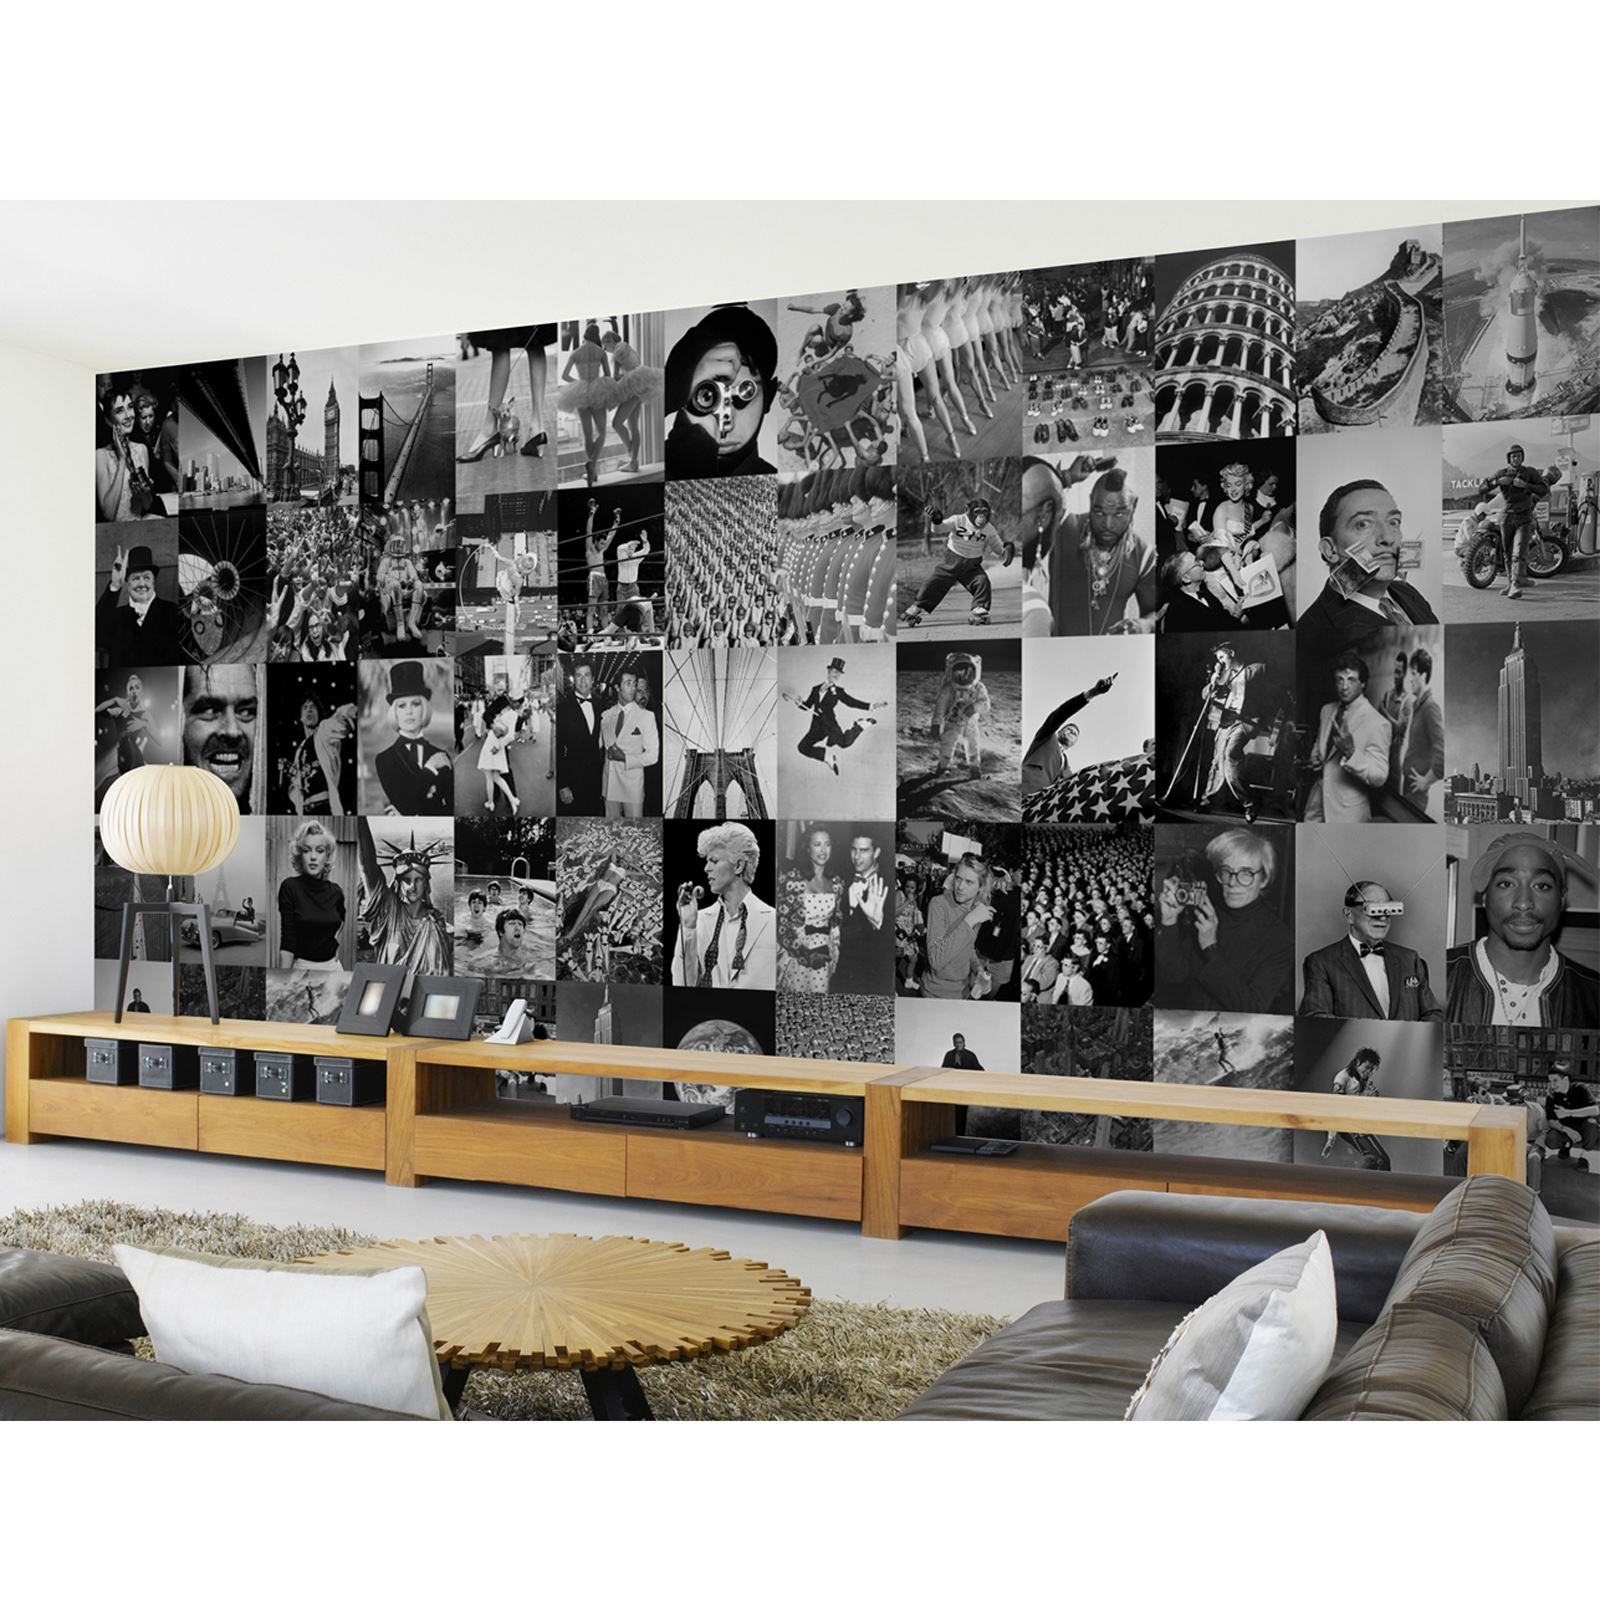 Creative collage designer 64 piece wall mural new york for Mural collage